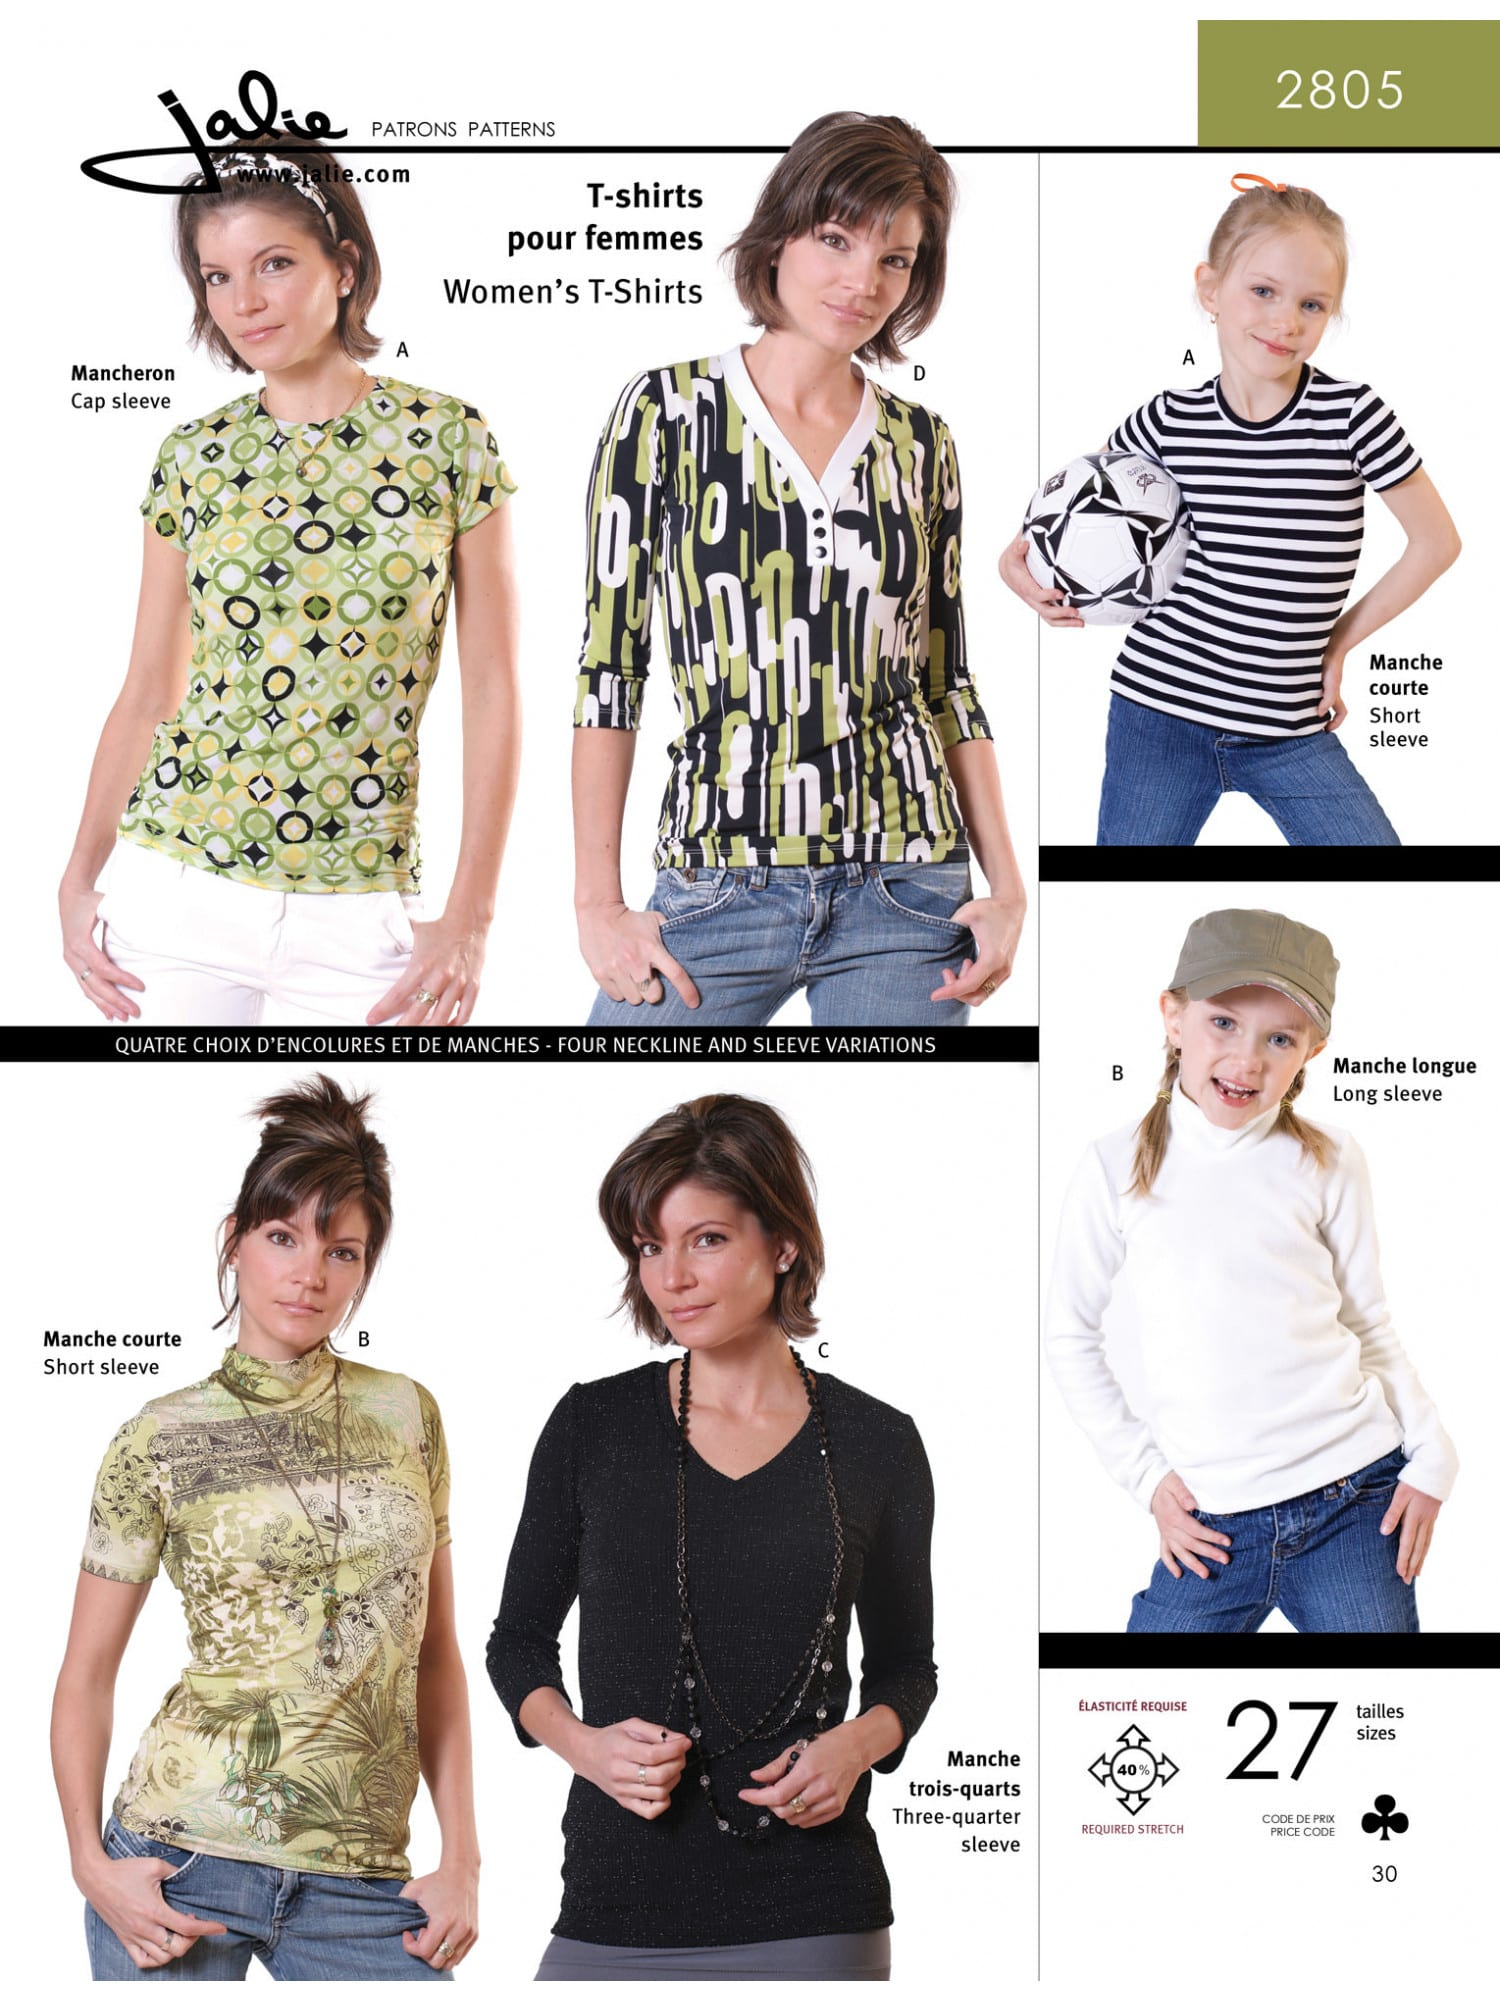 How to sew a womens T-shirt: pattern and product processing